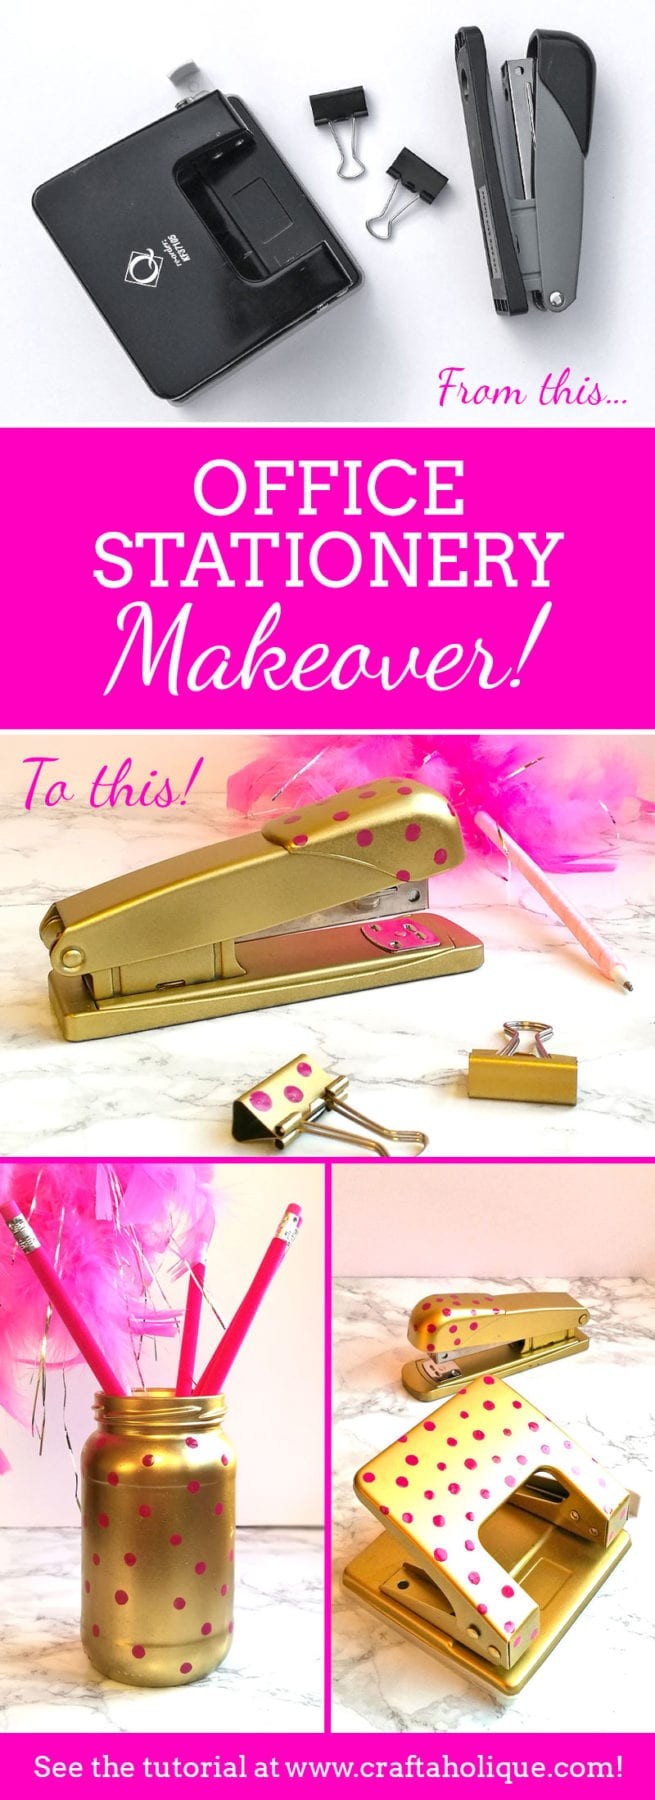 Office Stationery Makeover! How to jazz up your stapler, hole punch etc with spray paint and nail polish